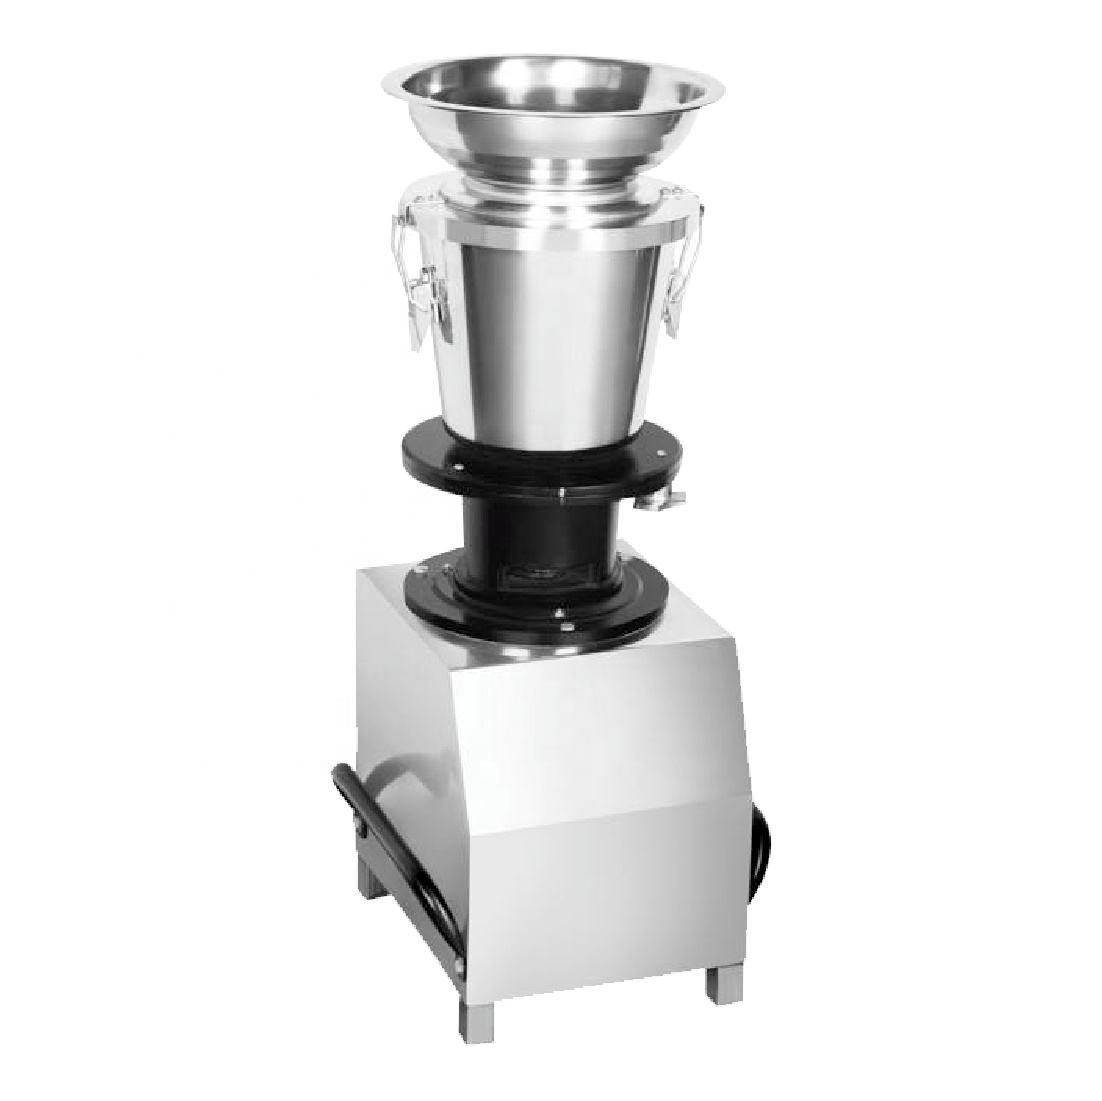 BEST QUALITY STAINLESS STEEL HEAVY DUTY SQUARE MODEL MIXER MIXING MACHINE FOR HOME USE OR RESTAU1RANT BLENDER GRINDER MACHINE